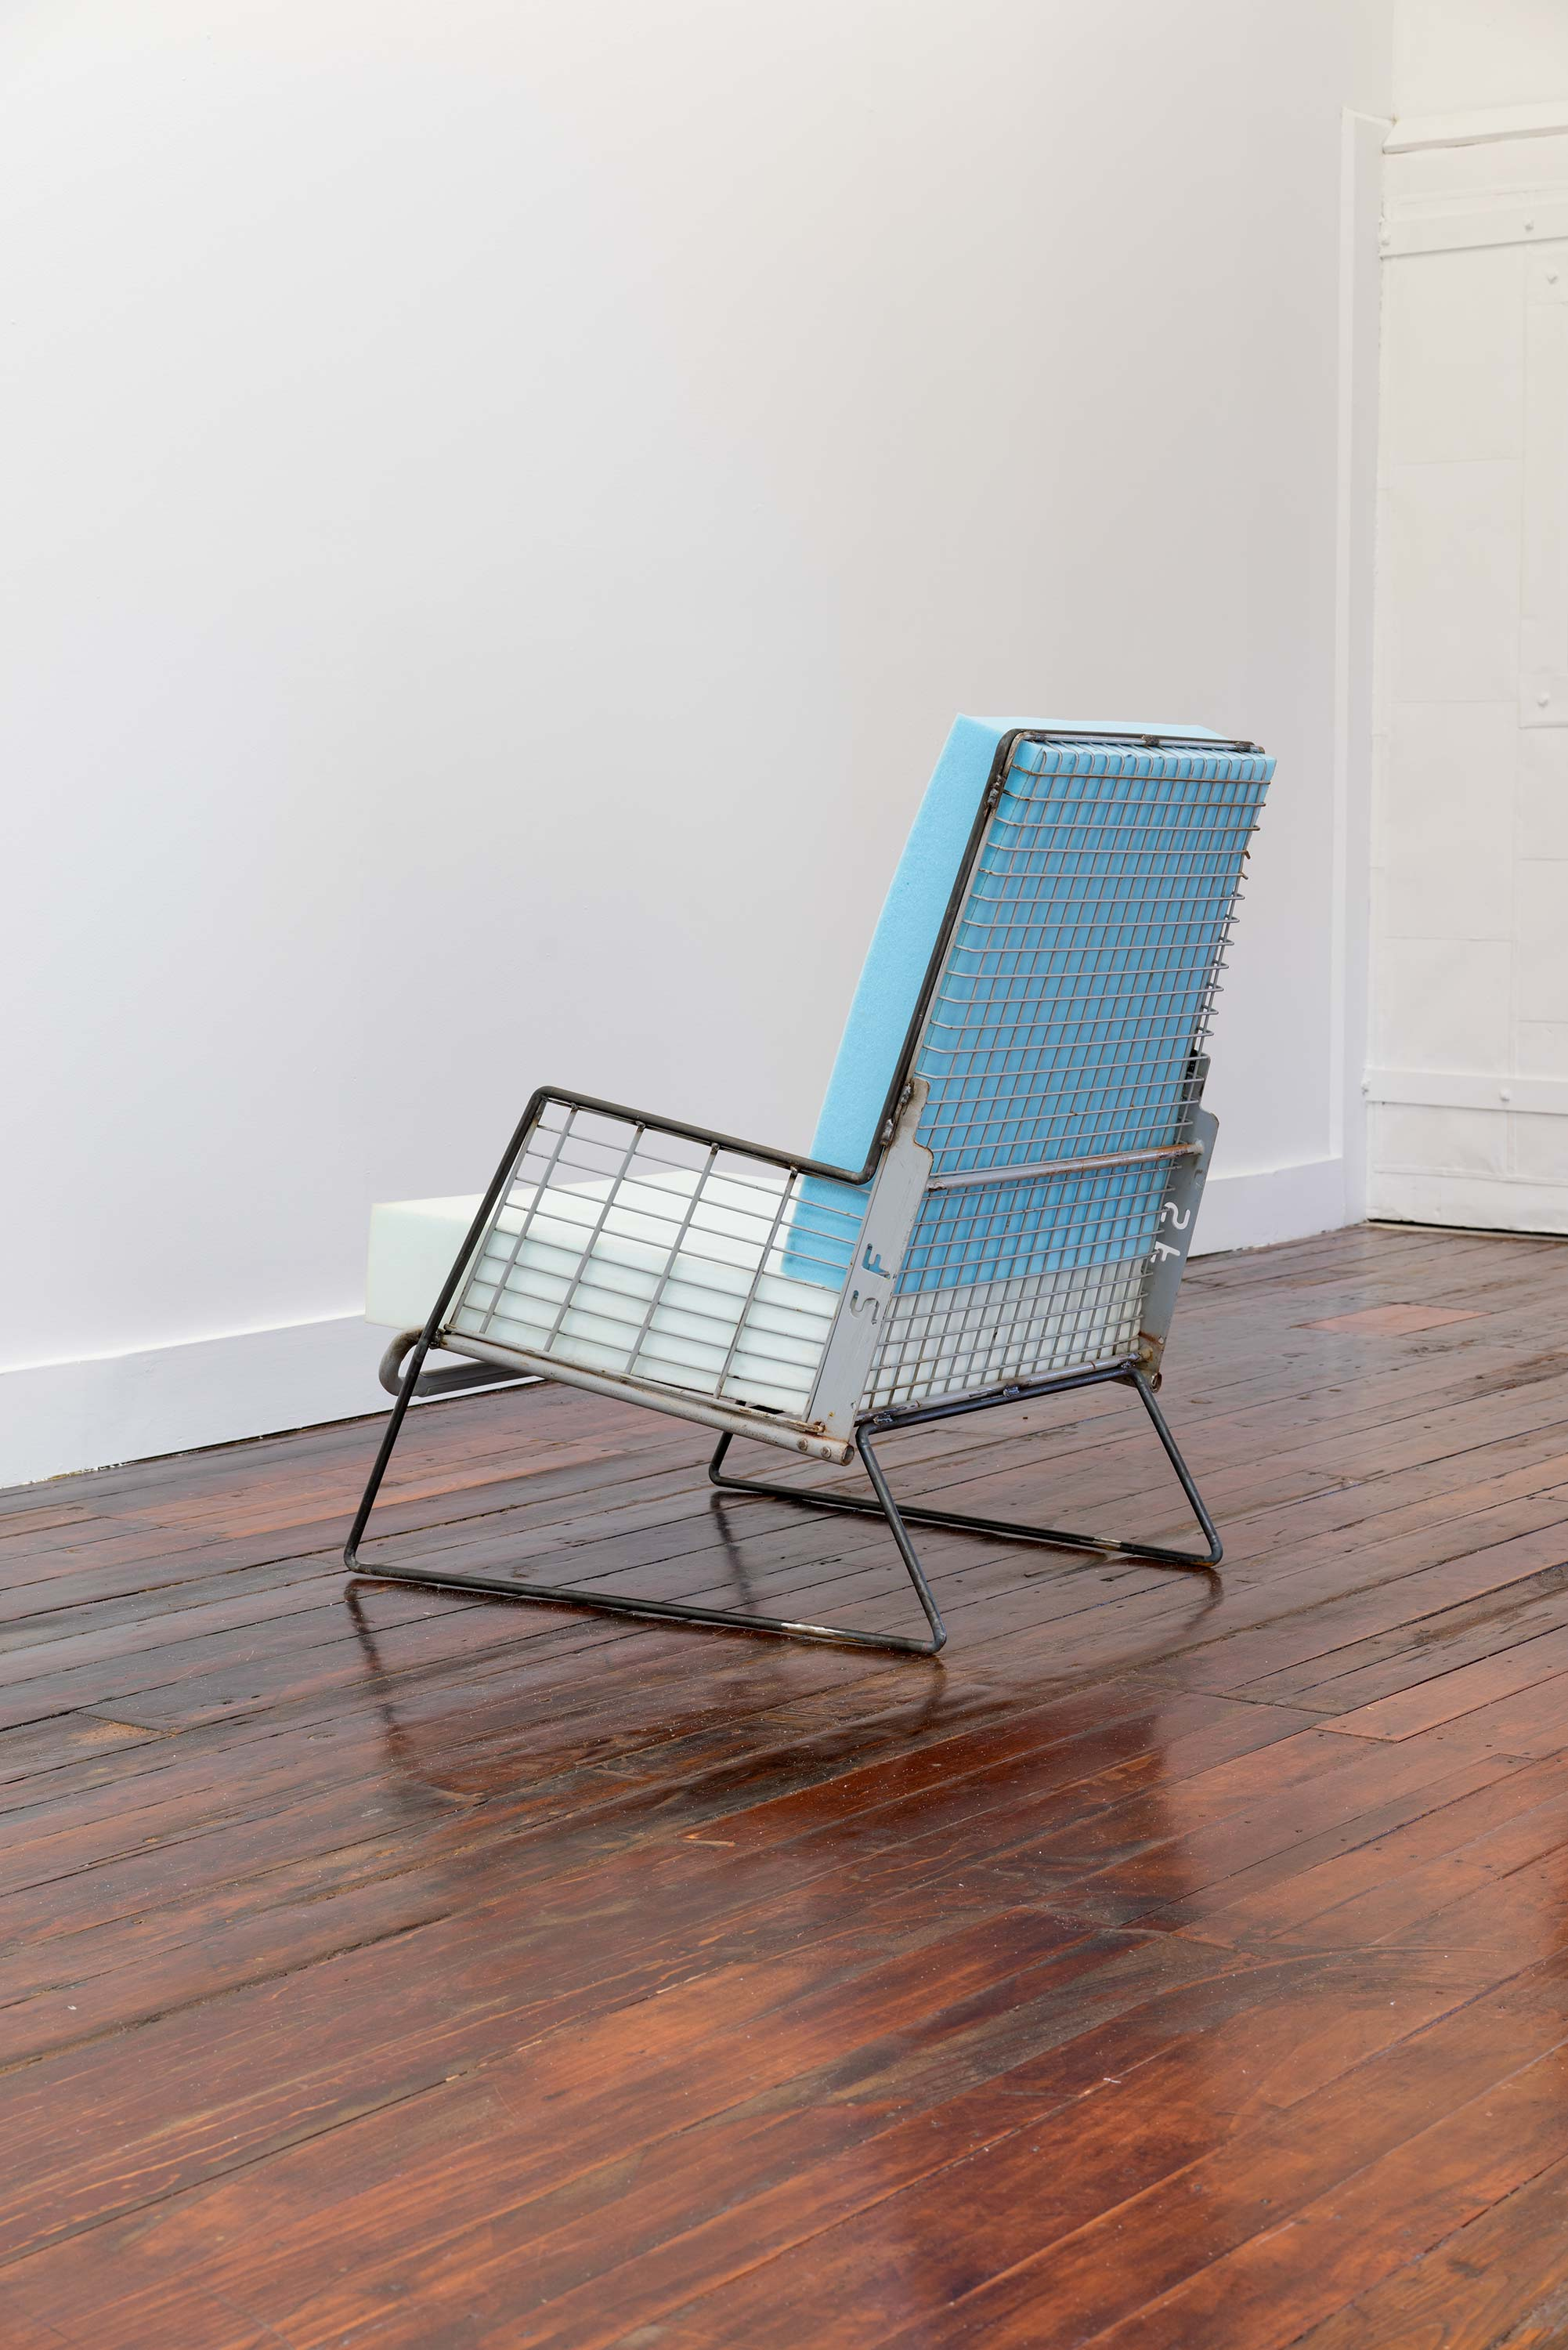 Nathan Azhderian<br>Untitled<br>2015<br>Steel shopping cart, hot rolled round steel bar, flexible polyurethane foam<br>24w x 39.5h x 26.5d inches (61 x 100 x 67 cm)